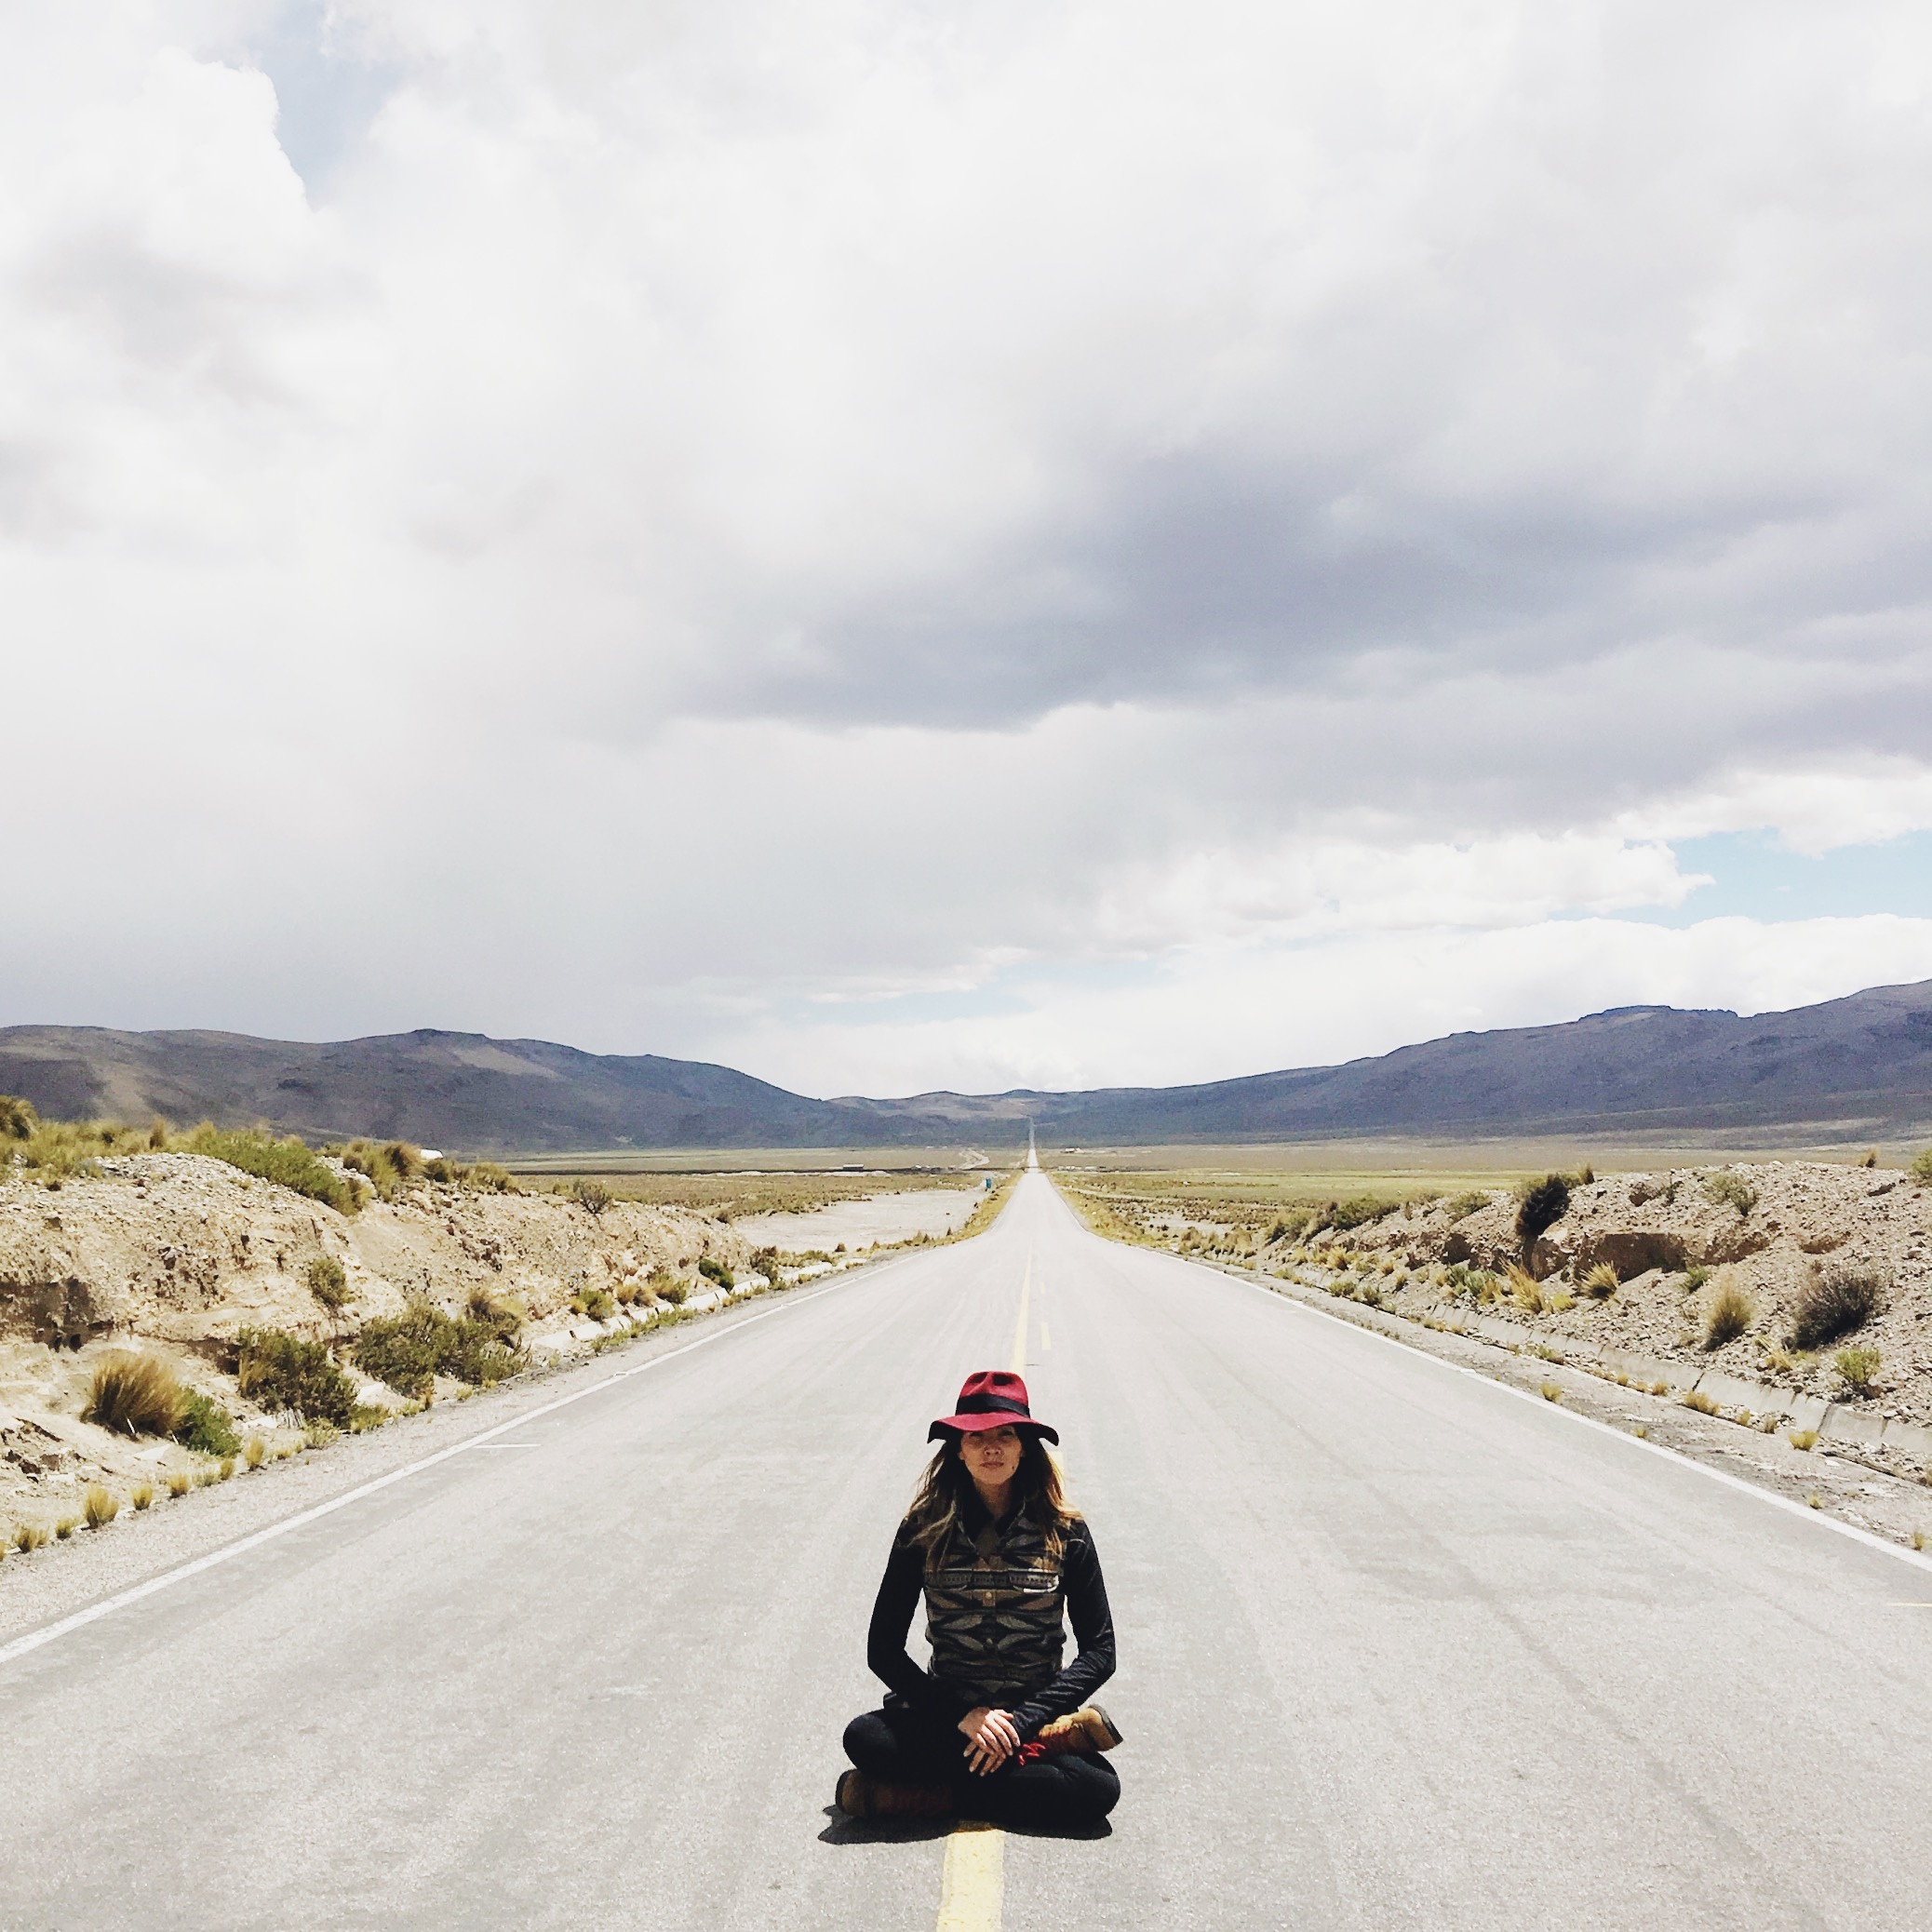 A woman sits crosslegged on a highway, with the road receding into the far distance.